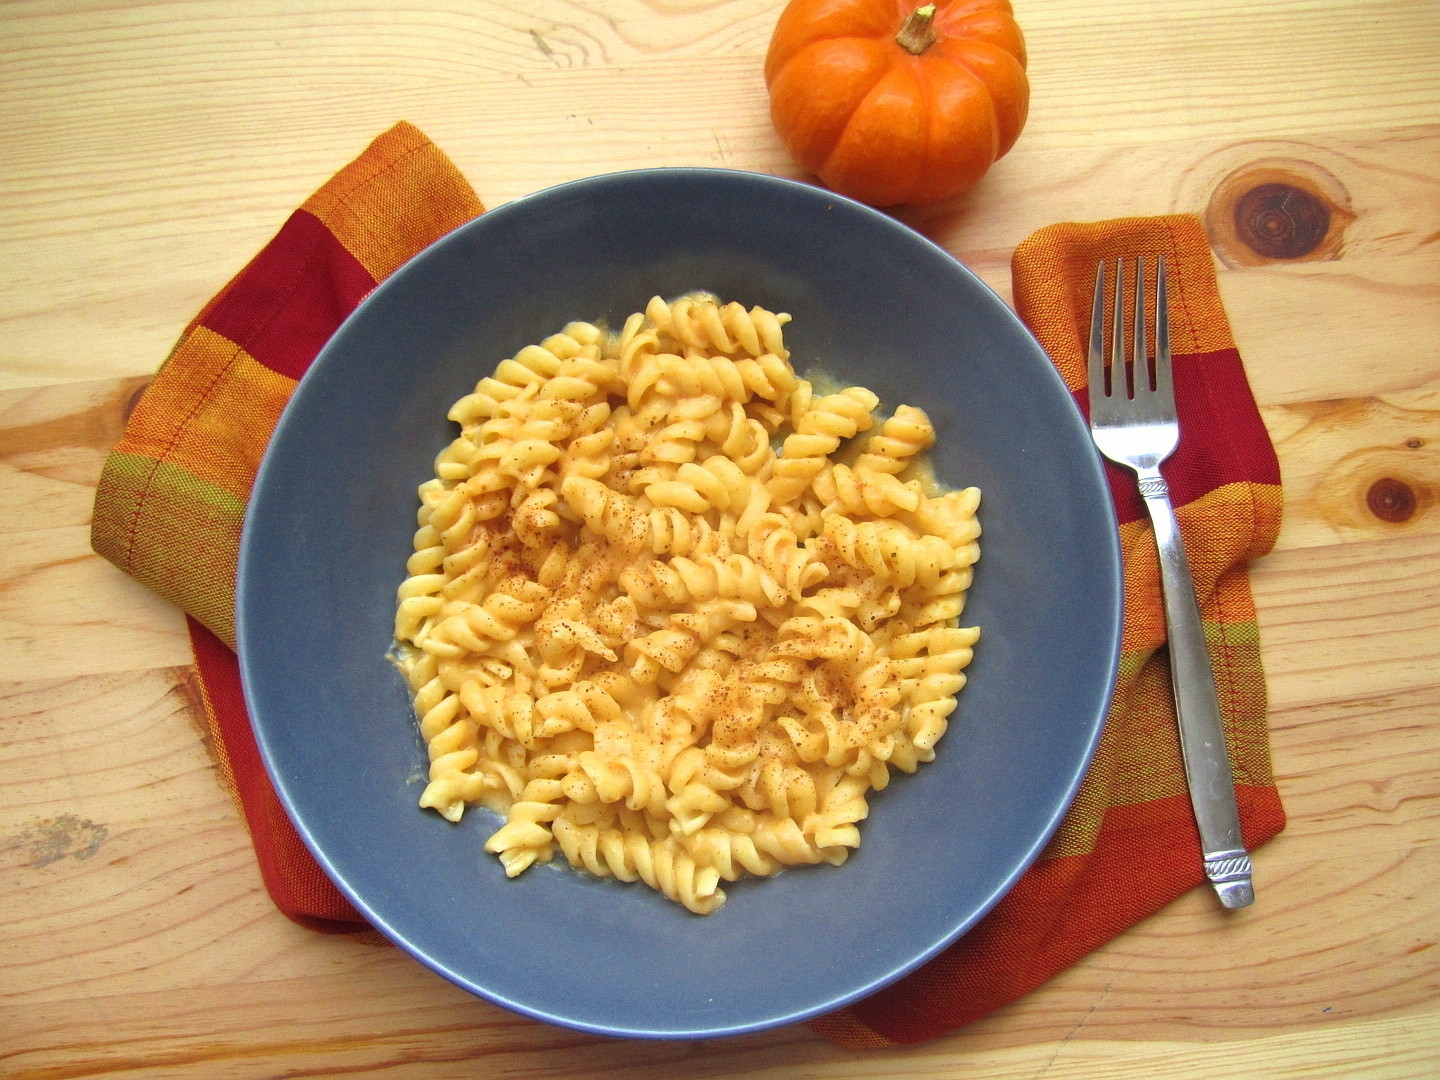 Low Fat Mac And Cheese Recipes  Pumpkin Mac and Cheese Low Fat and Low Carb Eat